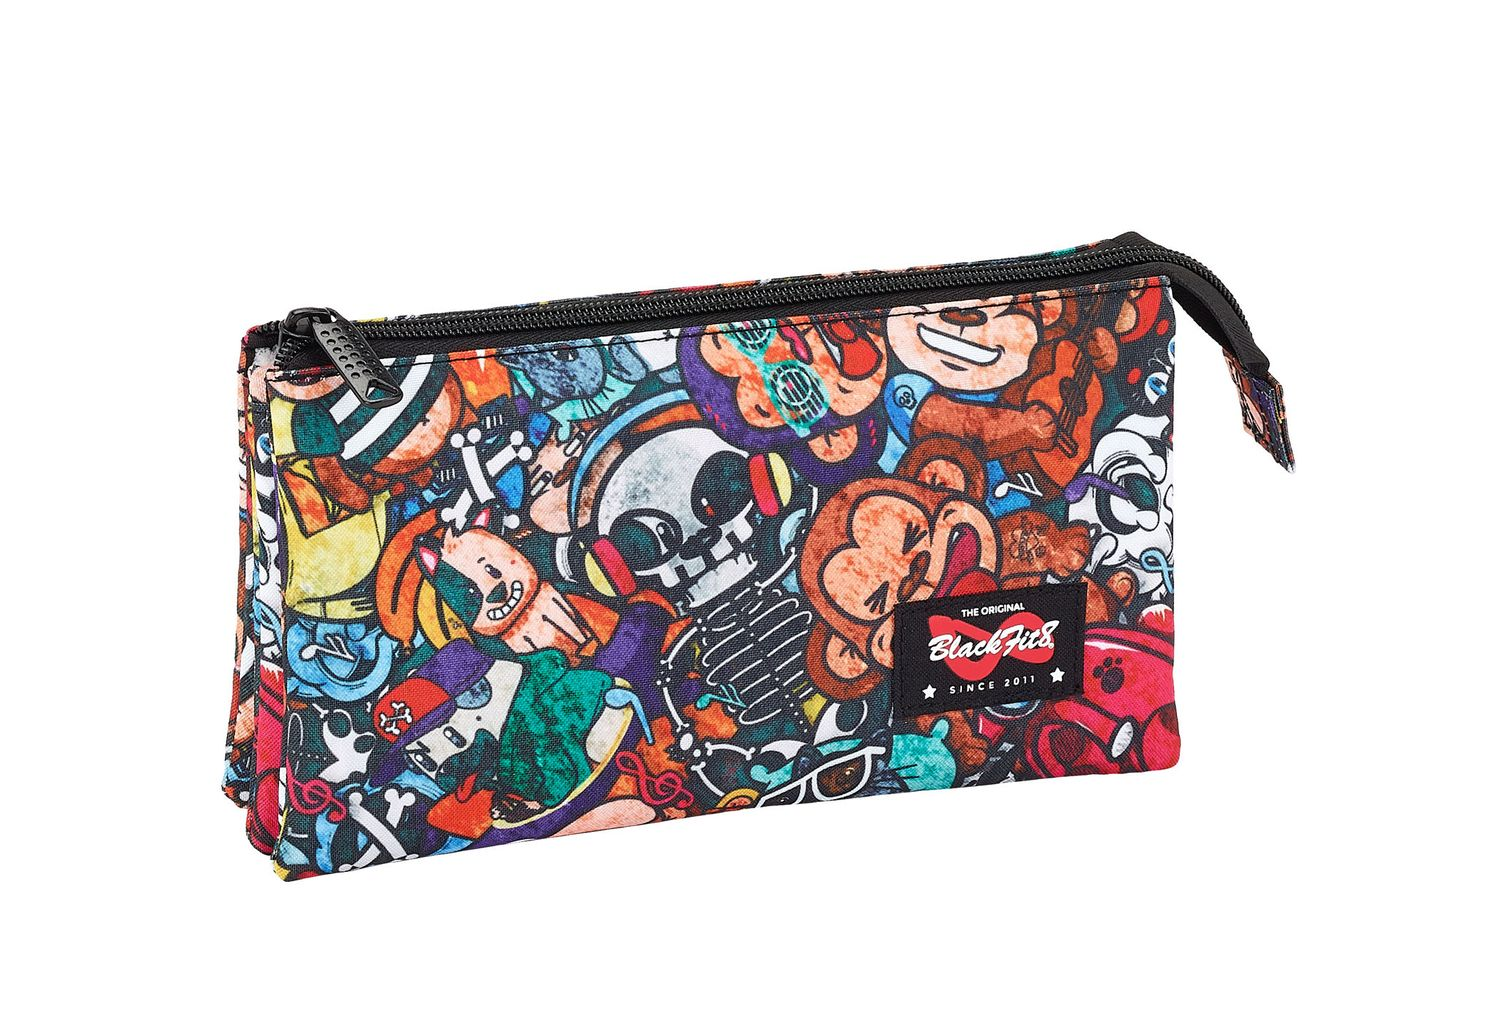 Triple Pencil Case Blackfit8 Monkey – image 1